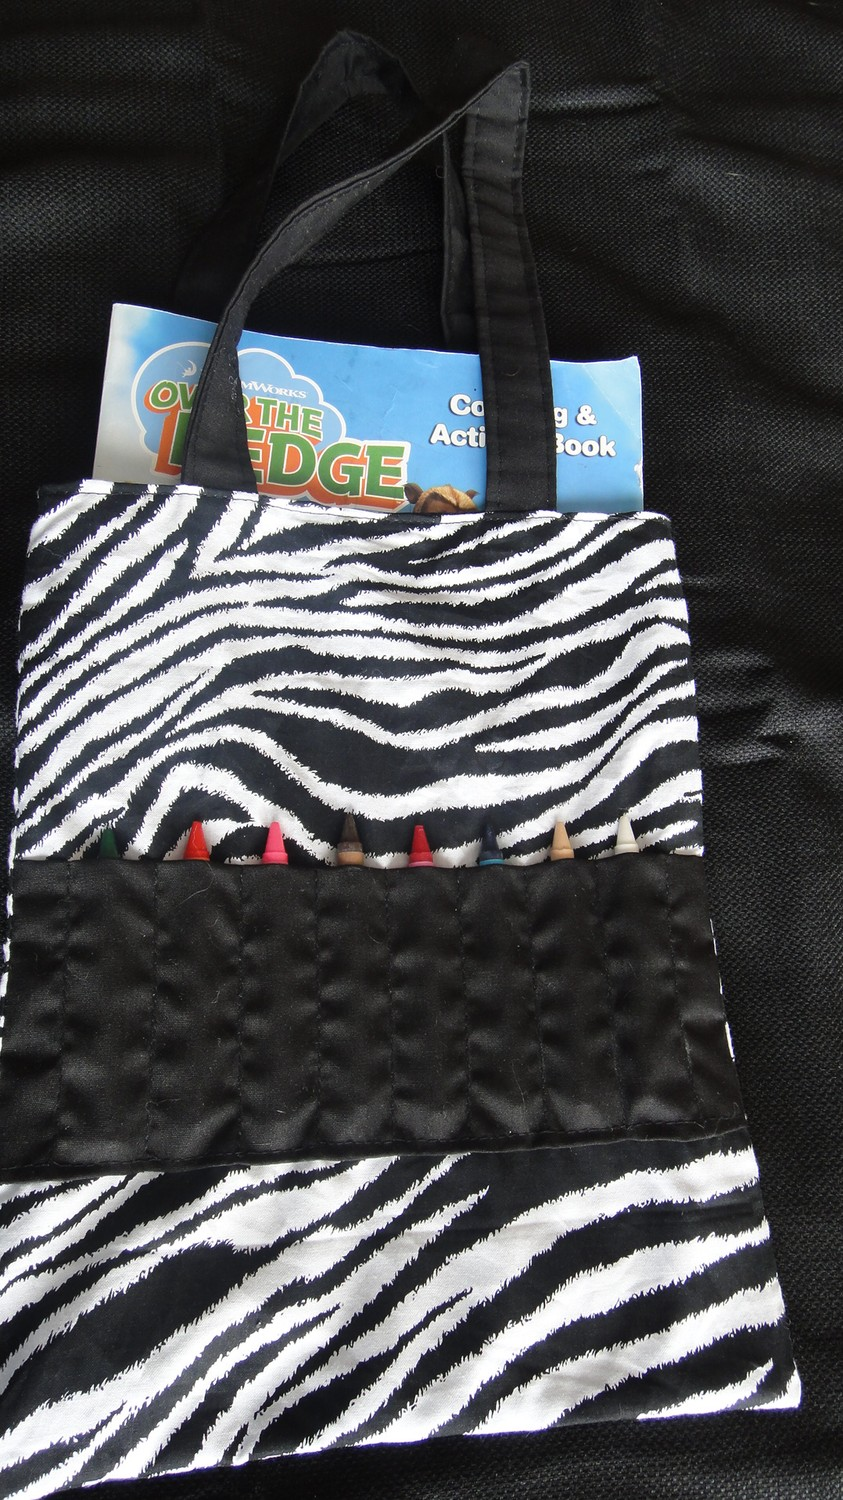 Crayon Tote with 8 Crayons in Zebra Print